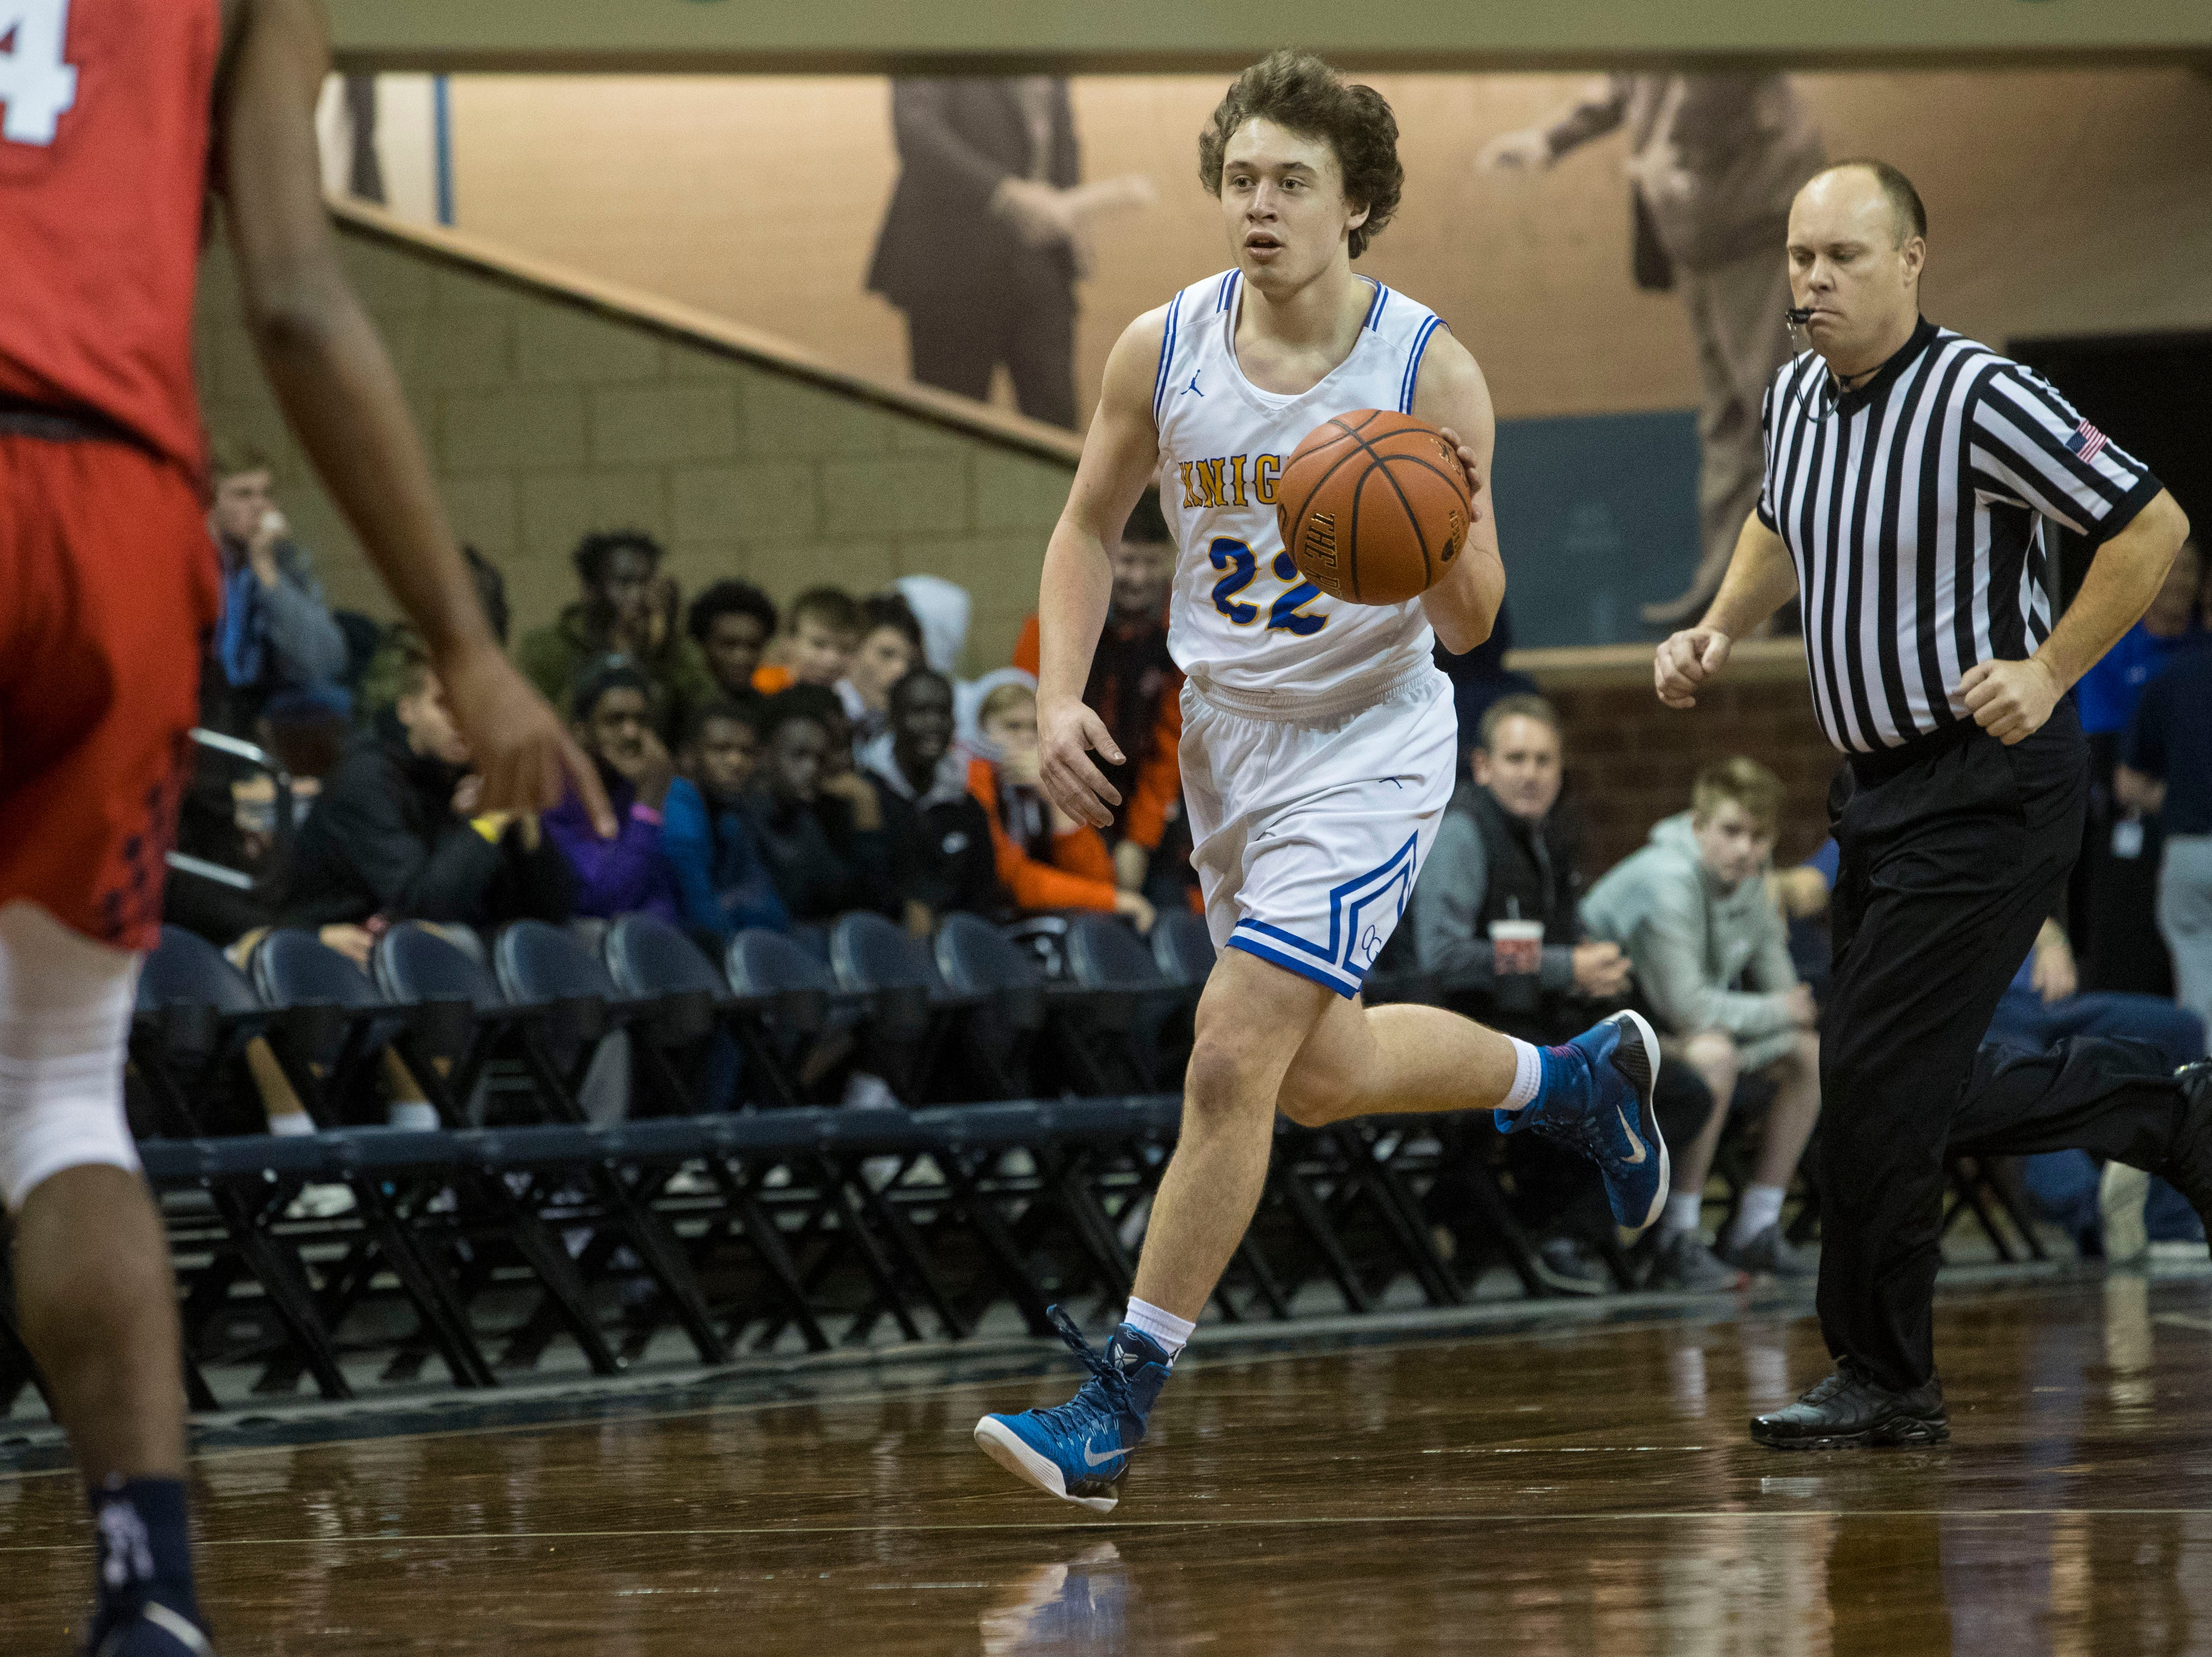 O'Gorman's Jeremy Jones (22) dribbles the ball during a game against Findlay Prep at the Hoop City Classic at the Sanford Pentagon in Sioux Falls, S.D., Saturday, Dec. 29, 2018.